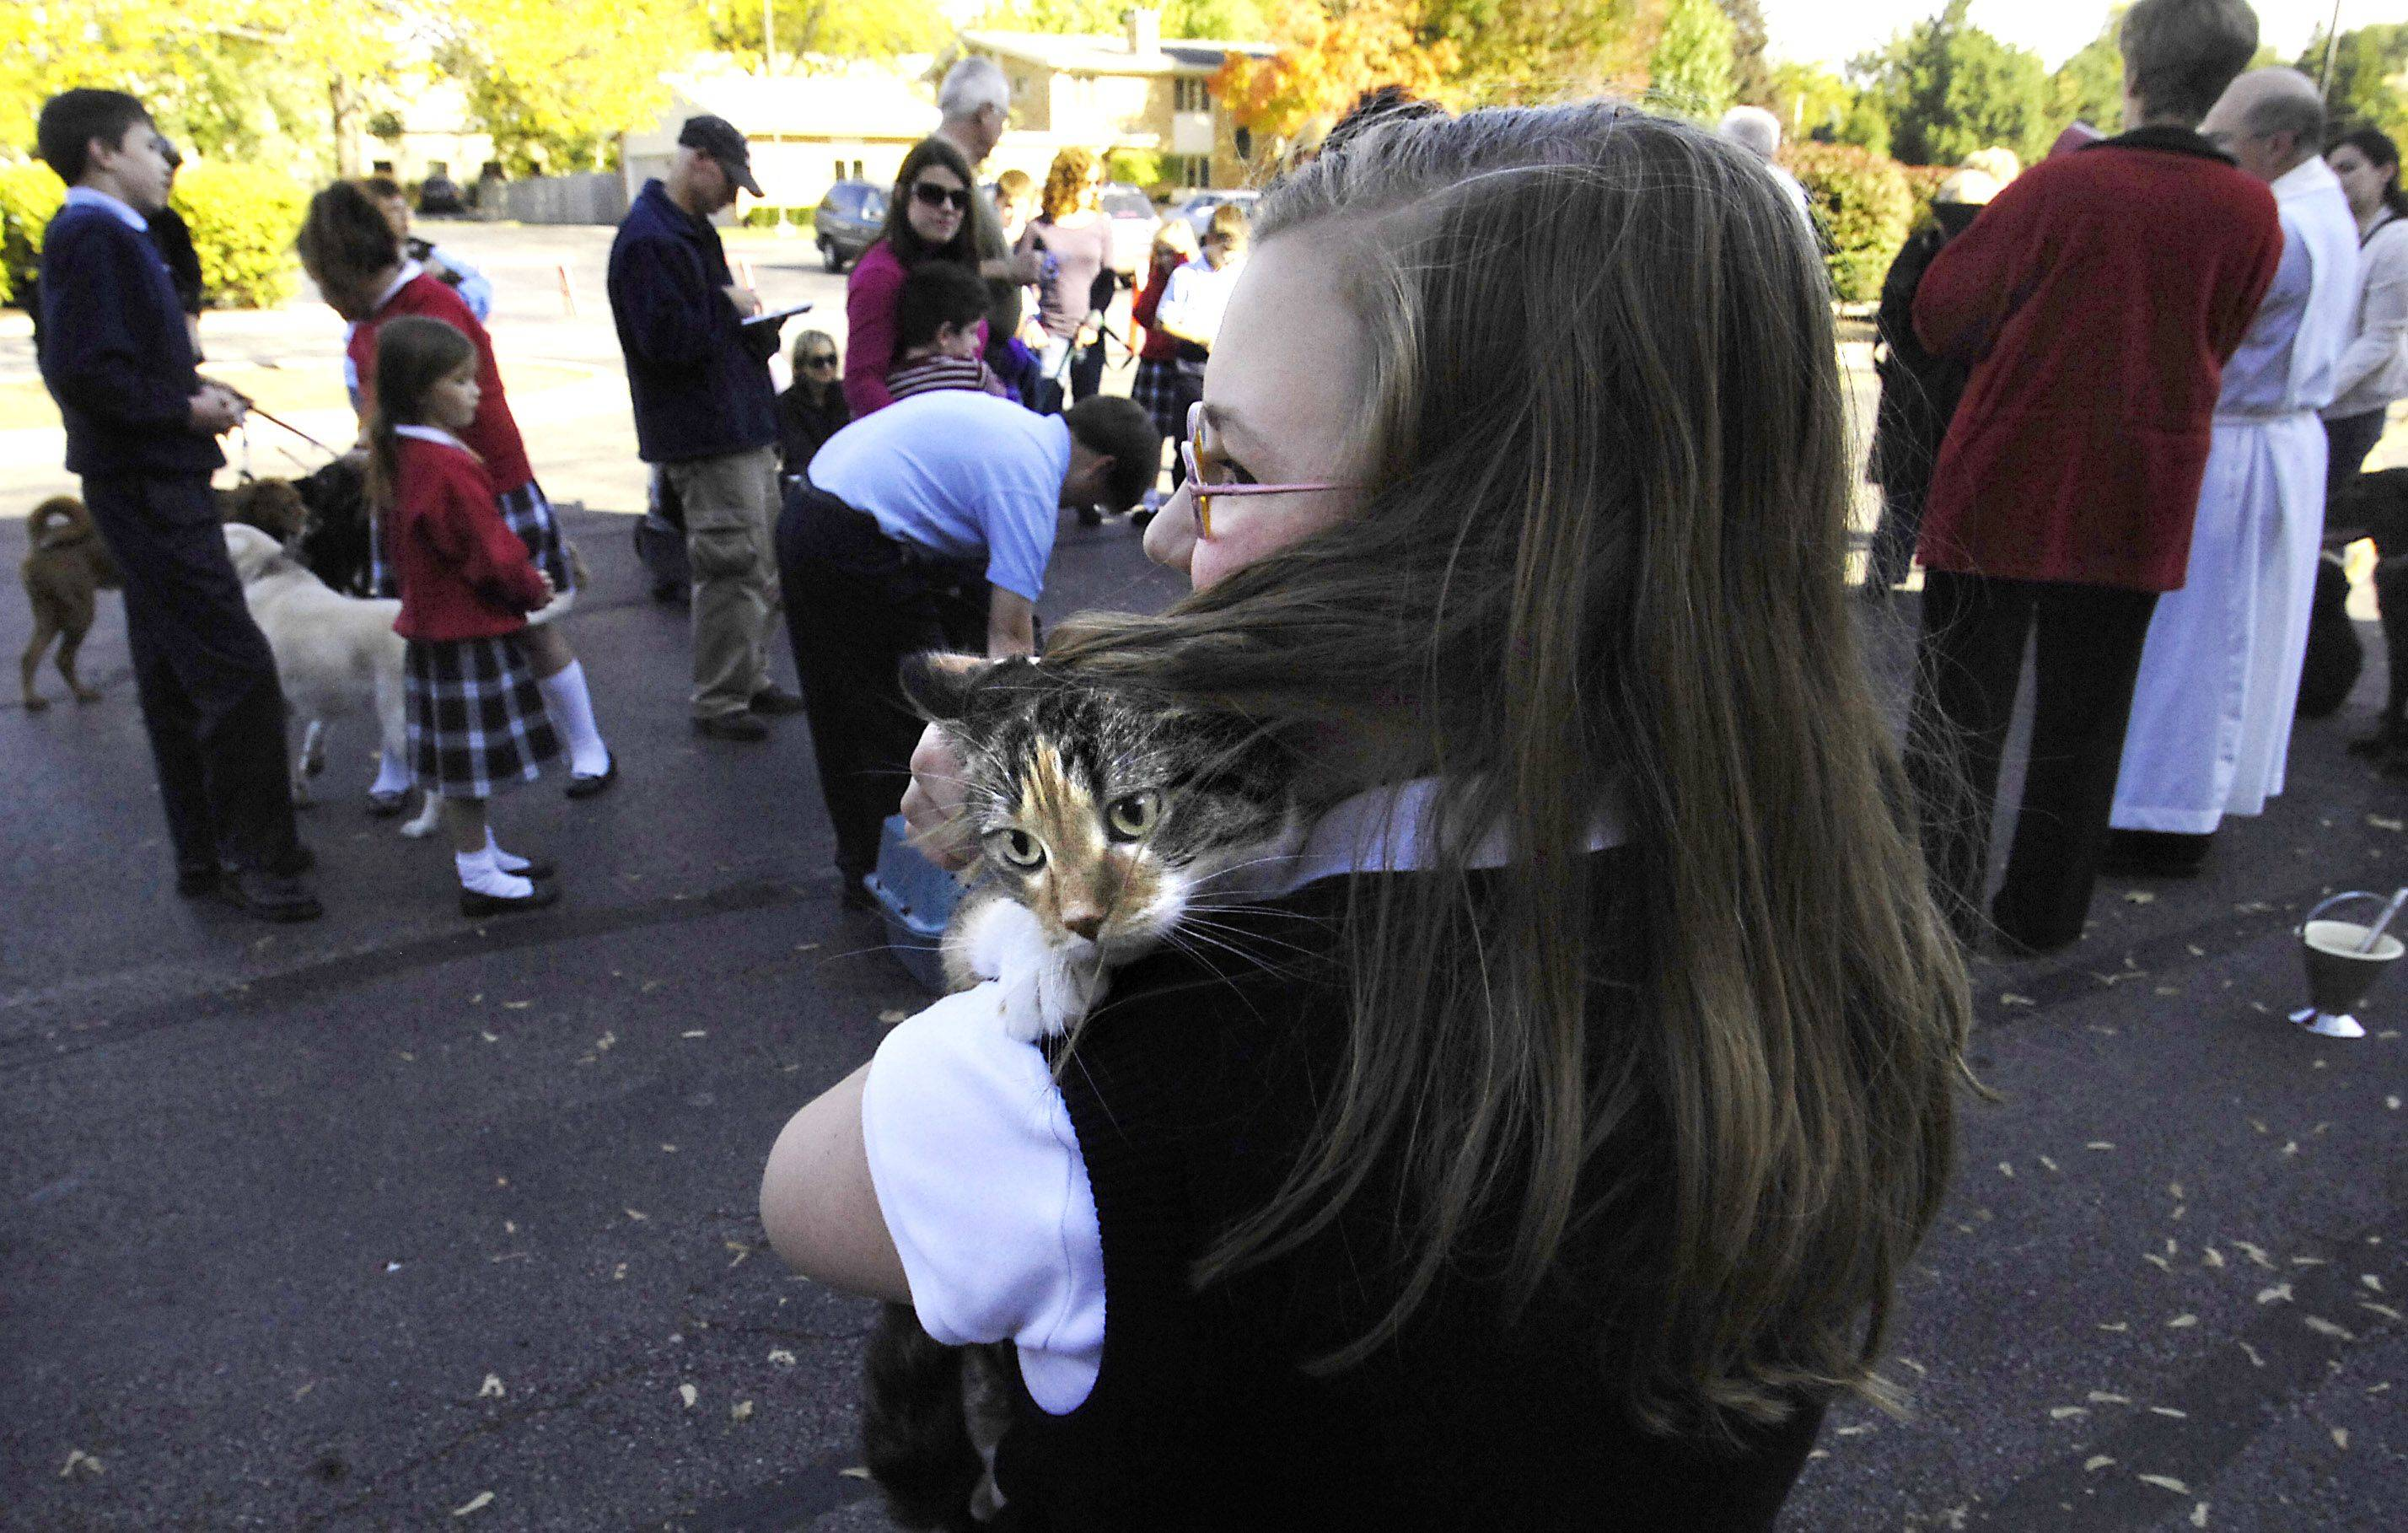 Jill Danklefsen's three-year-old cat, Libby, clings to the thirteen-year-olds shoulder as Fr. Dennis Morrissy conducts a pet blessing Monday at St. Peter Church in Geneva. The blessing celebrated the Feast Day of St. Francis of Assisi. Jill is from Geneva and is a St. Peter member.